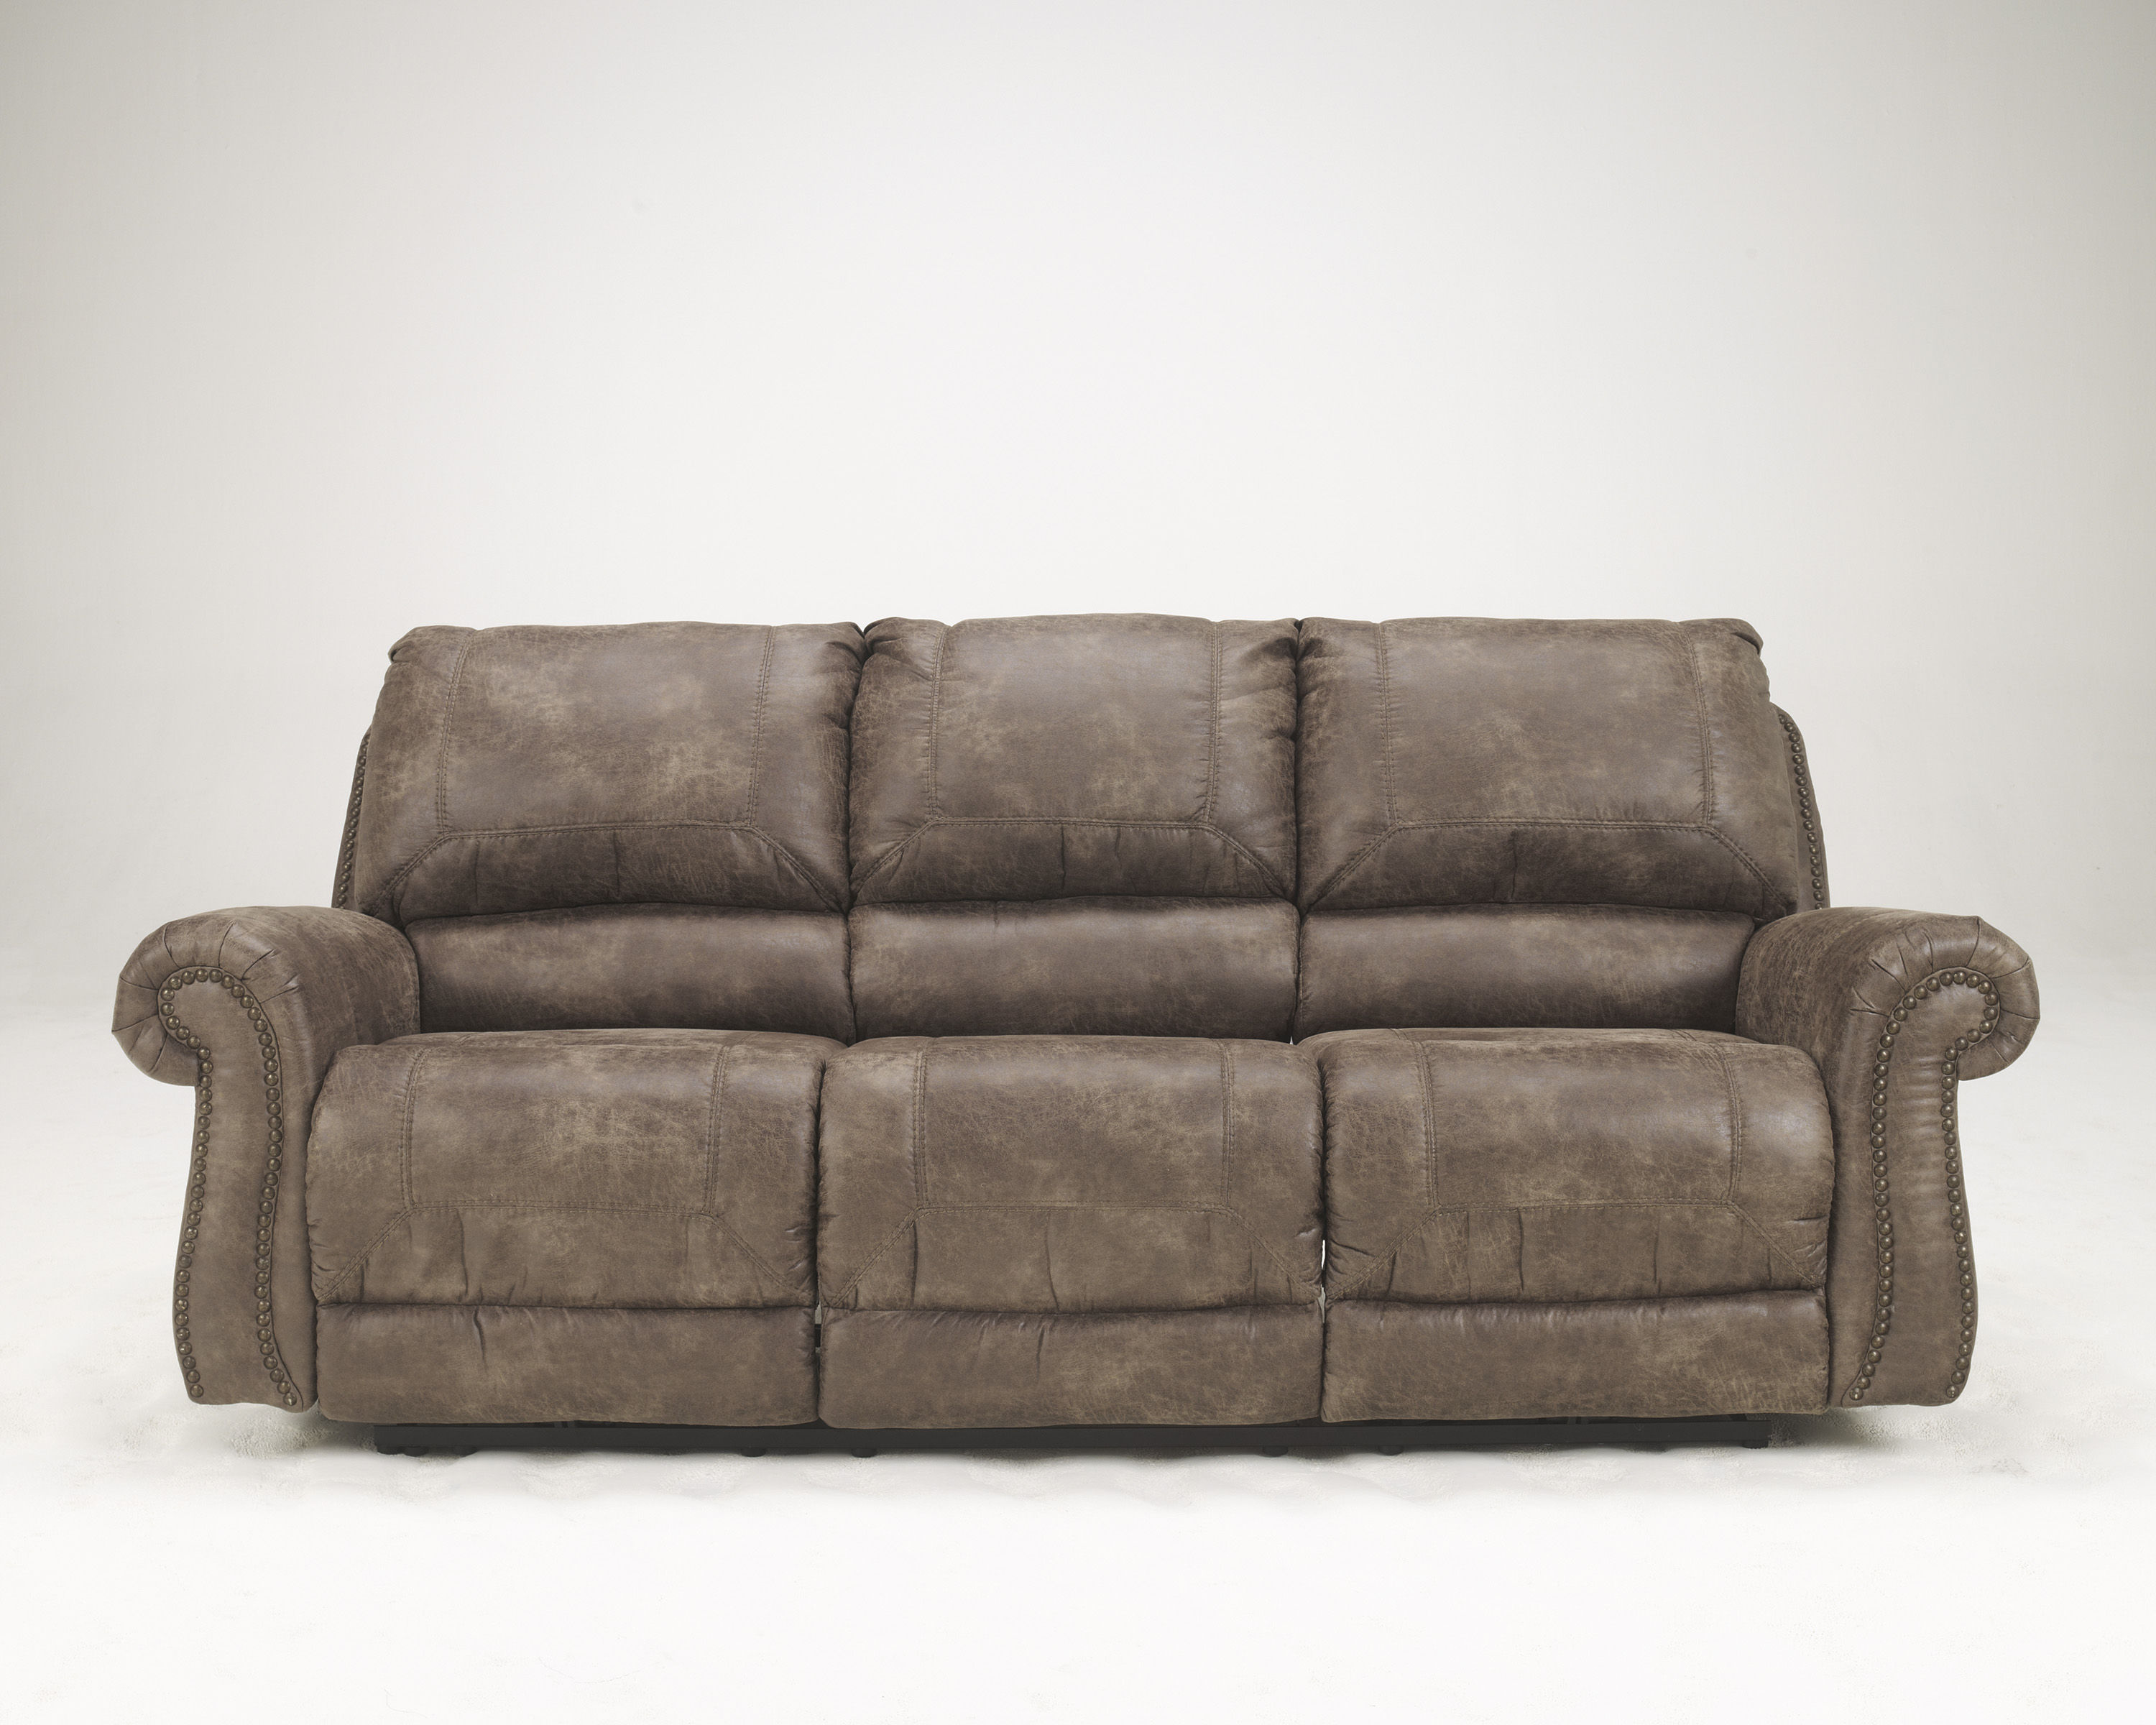 Oberson Contemporary Gunsmoke Fabric Reclining Sofa